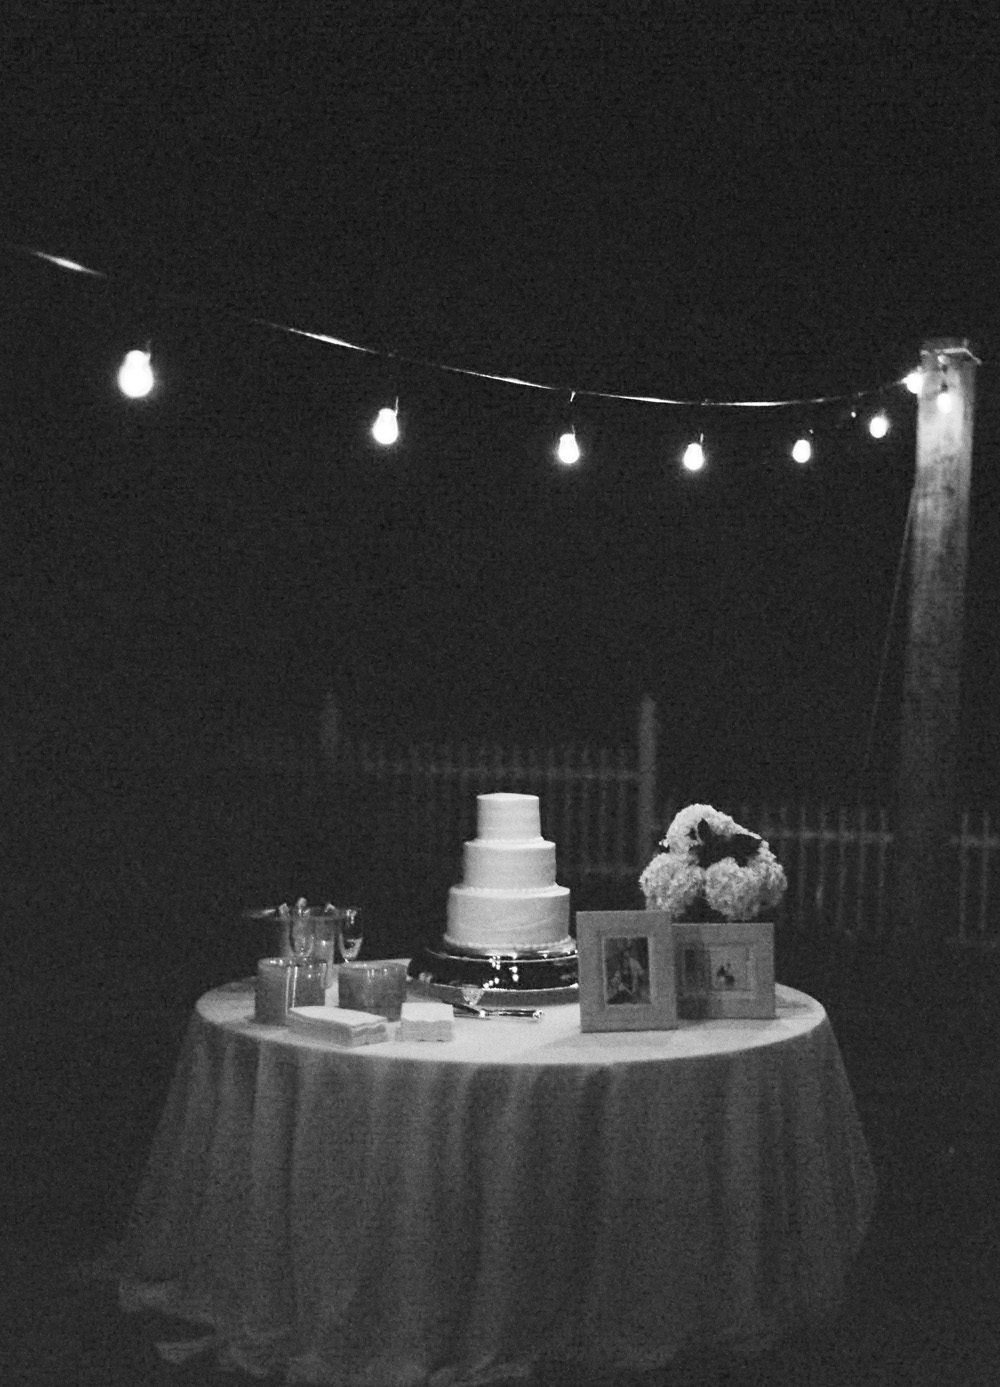 fine_art_beach_film_wedding_photographer.jpg